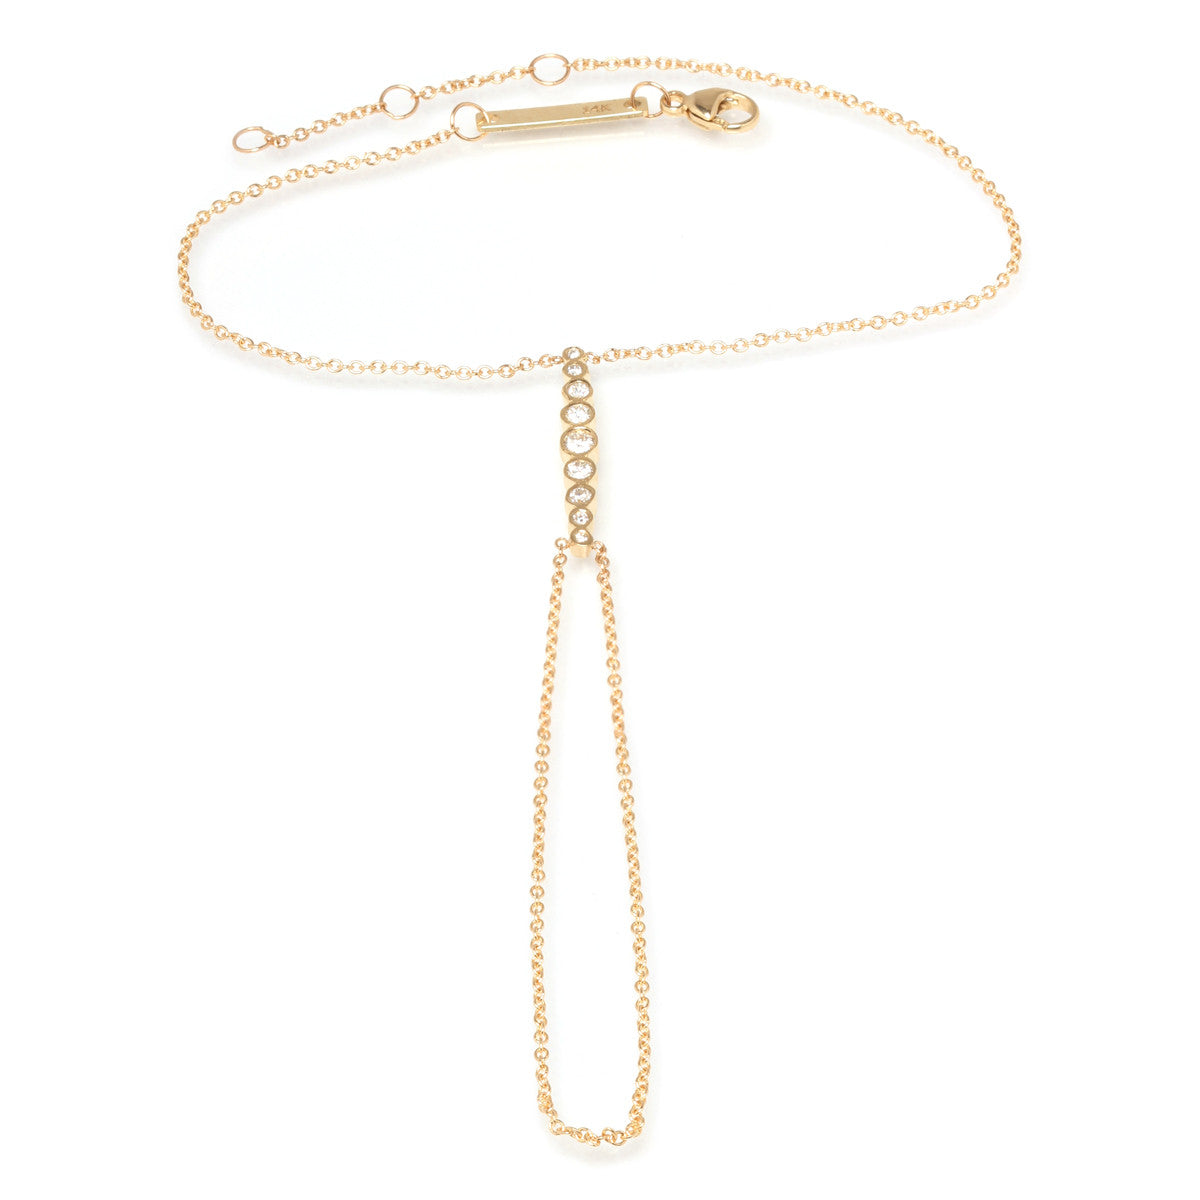 Zoë Chicco 14kt Yellow Gold Graduated Bezel Set Diamond Hand Chain